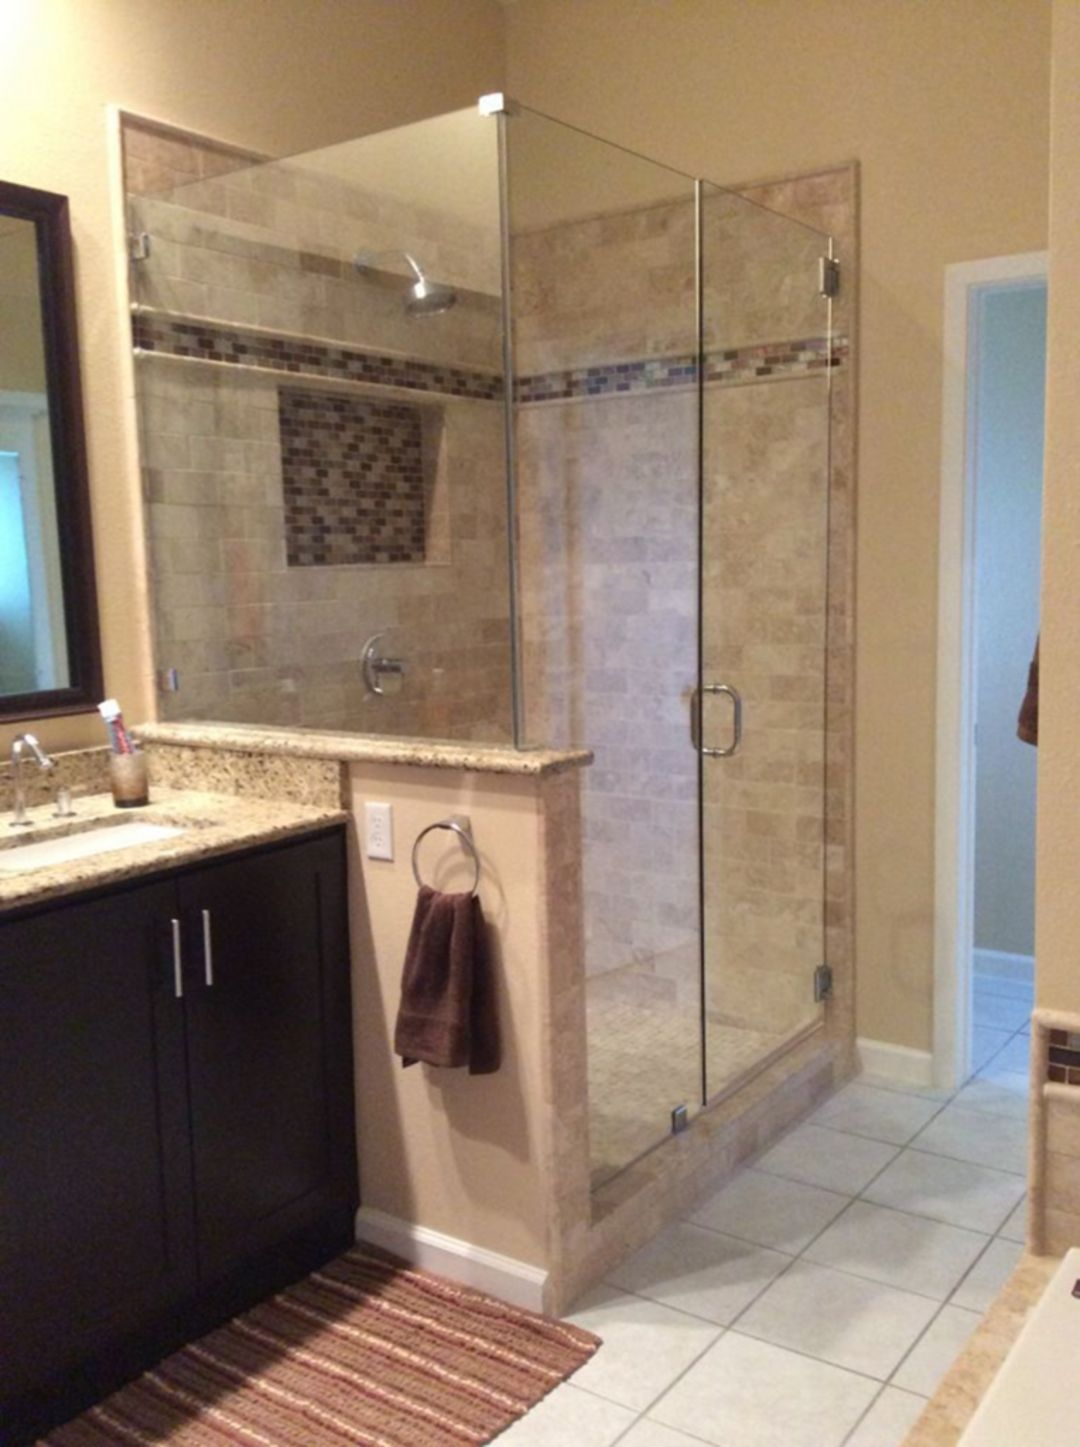 Outstanding 20 Top Stand Up Shower Design For Small Bathroom Ideas Https Bosidolot